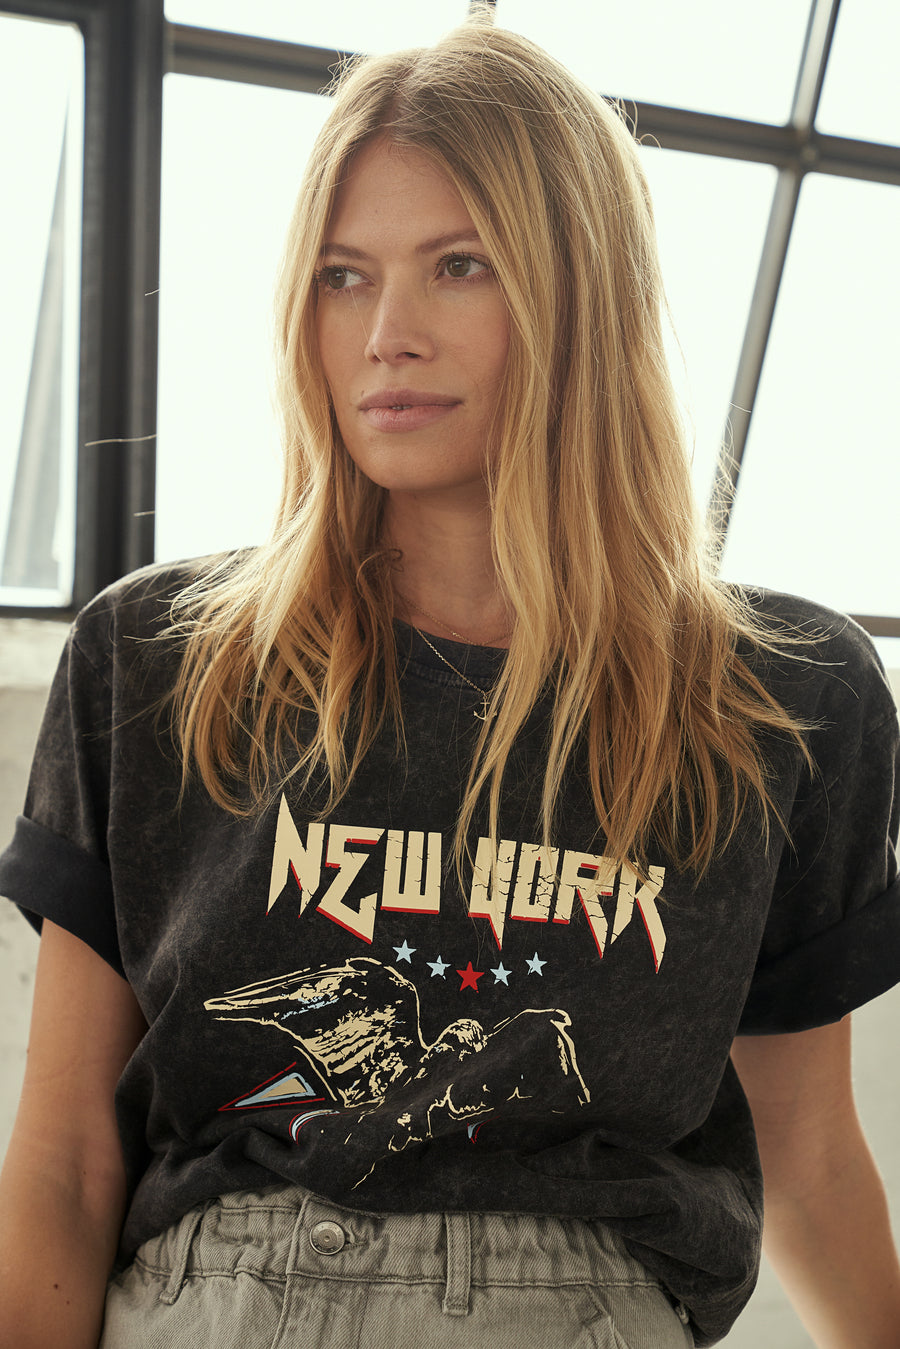 New York Vintage T-Shirt